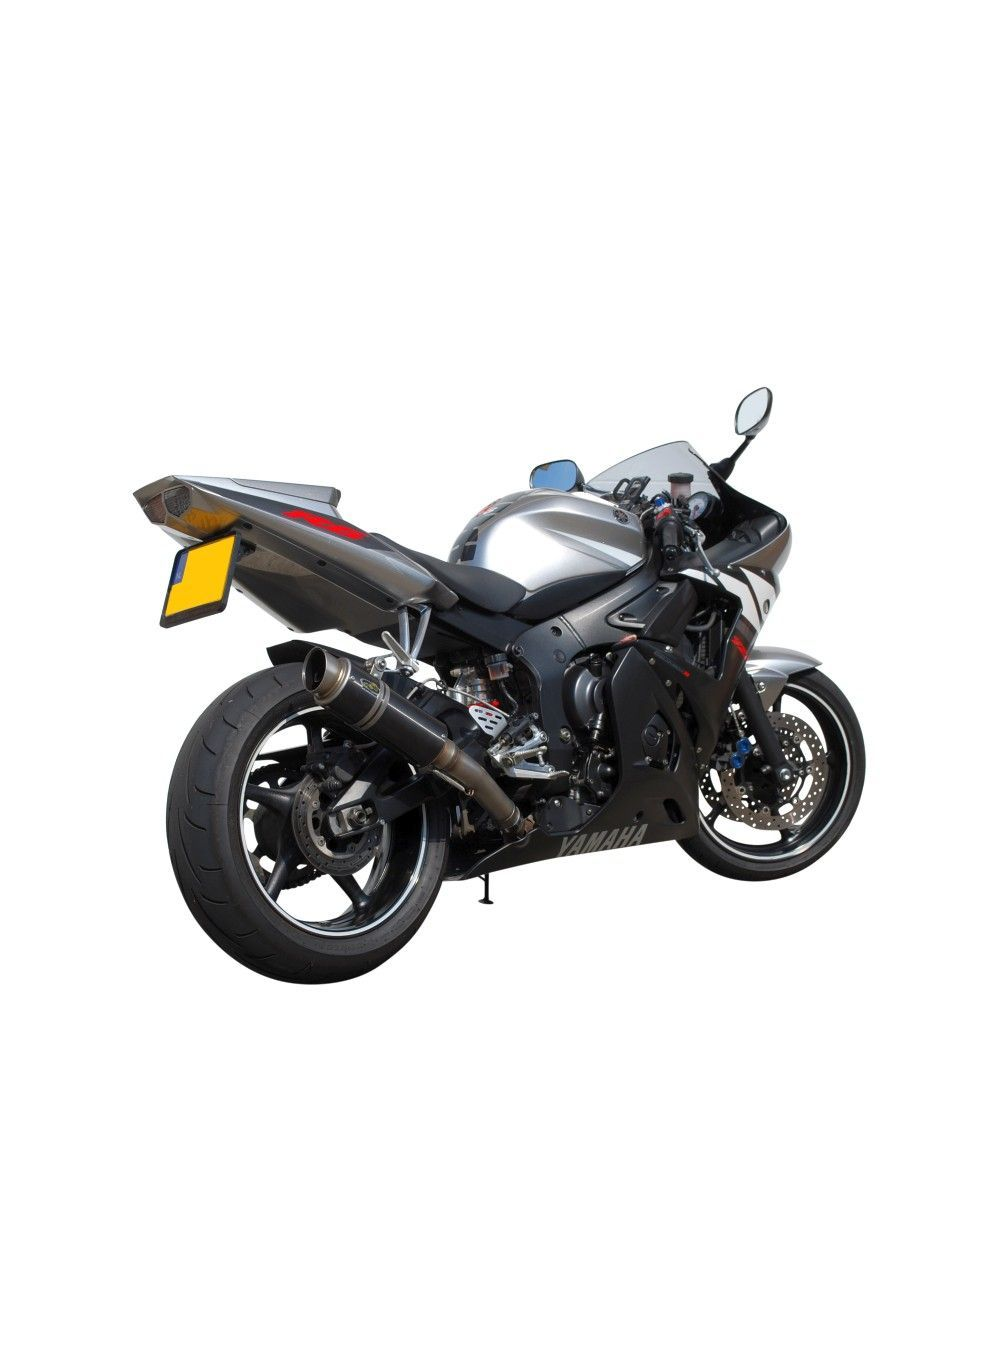 G g moto2 uitlaat yzf 600 r6 03 05 for Yamaha r6 600 for sale